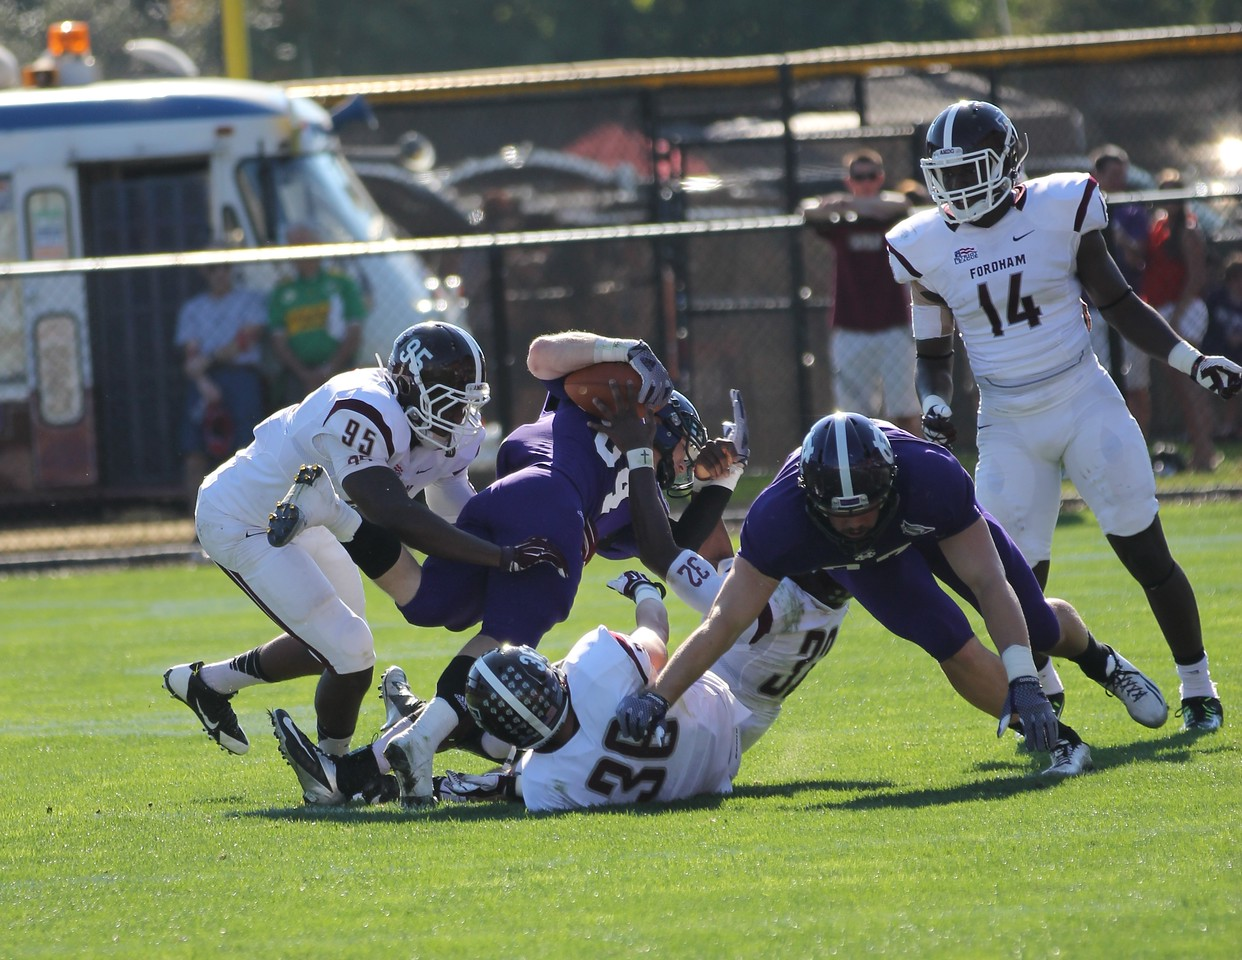 Fordham @ Holy Cross 45-16 Win 2014 364